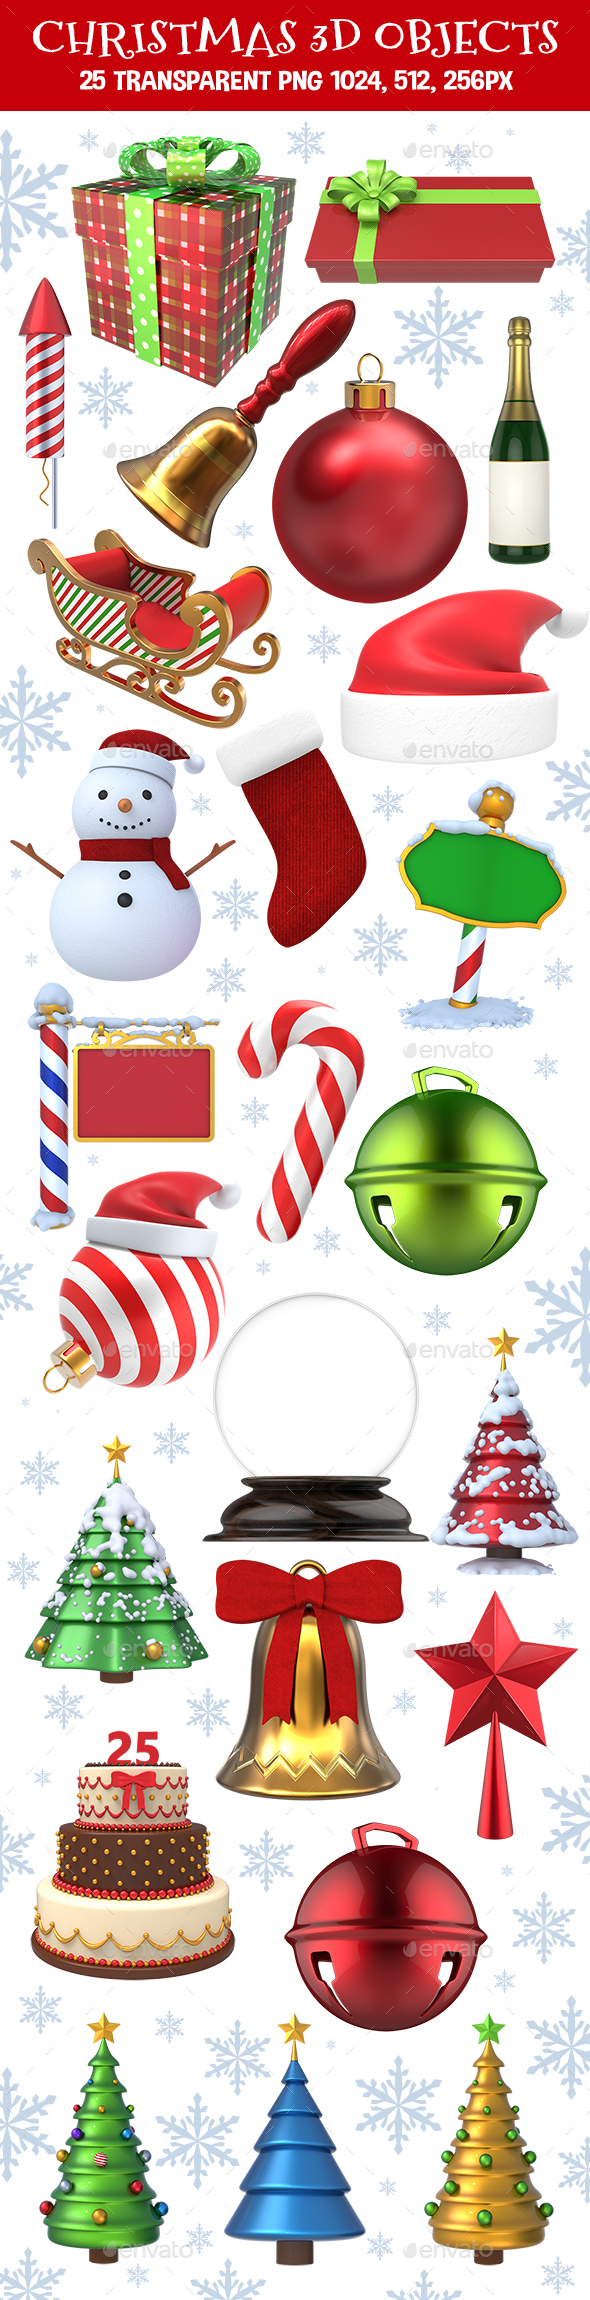 Christmas 3D Objects Set - Objects 3D Renders